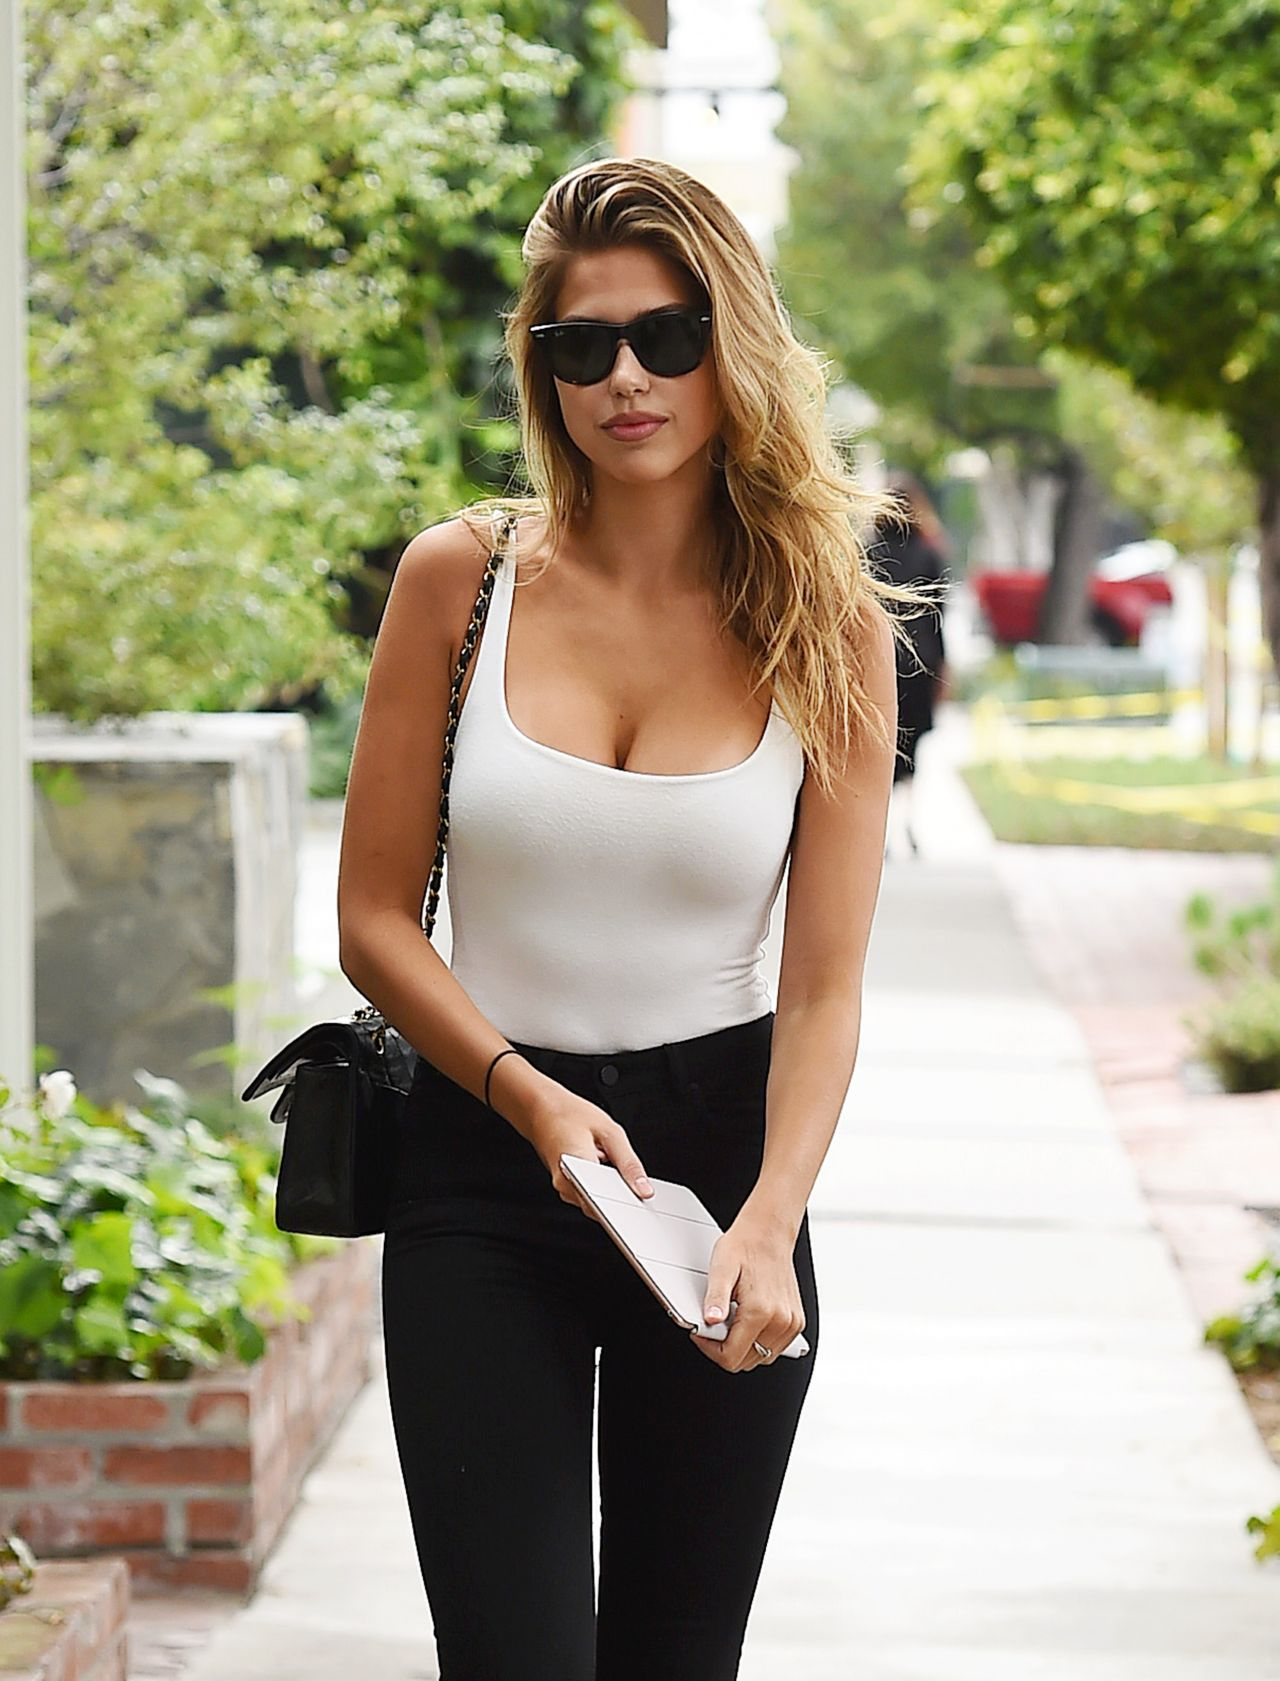 Kara Del Toro Street Fashion - Los Angeles 05102017-3073